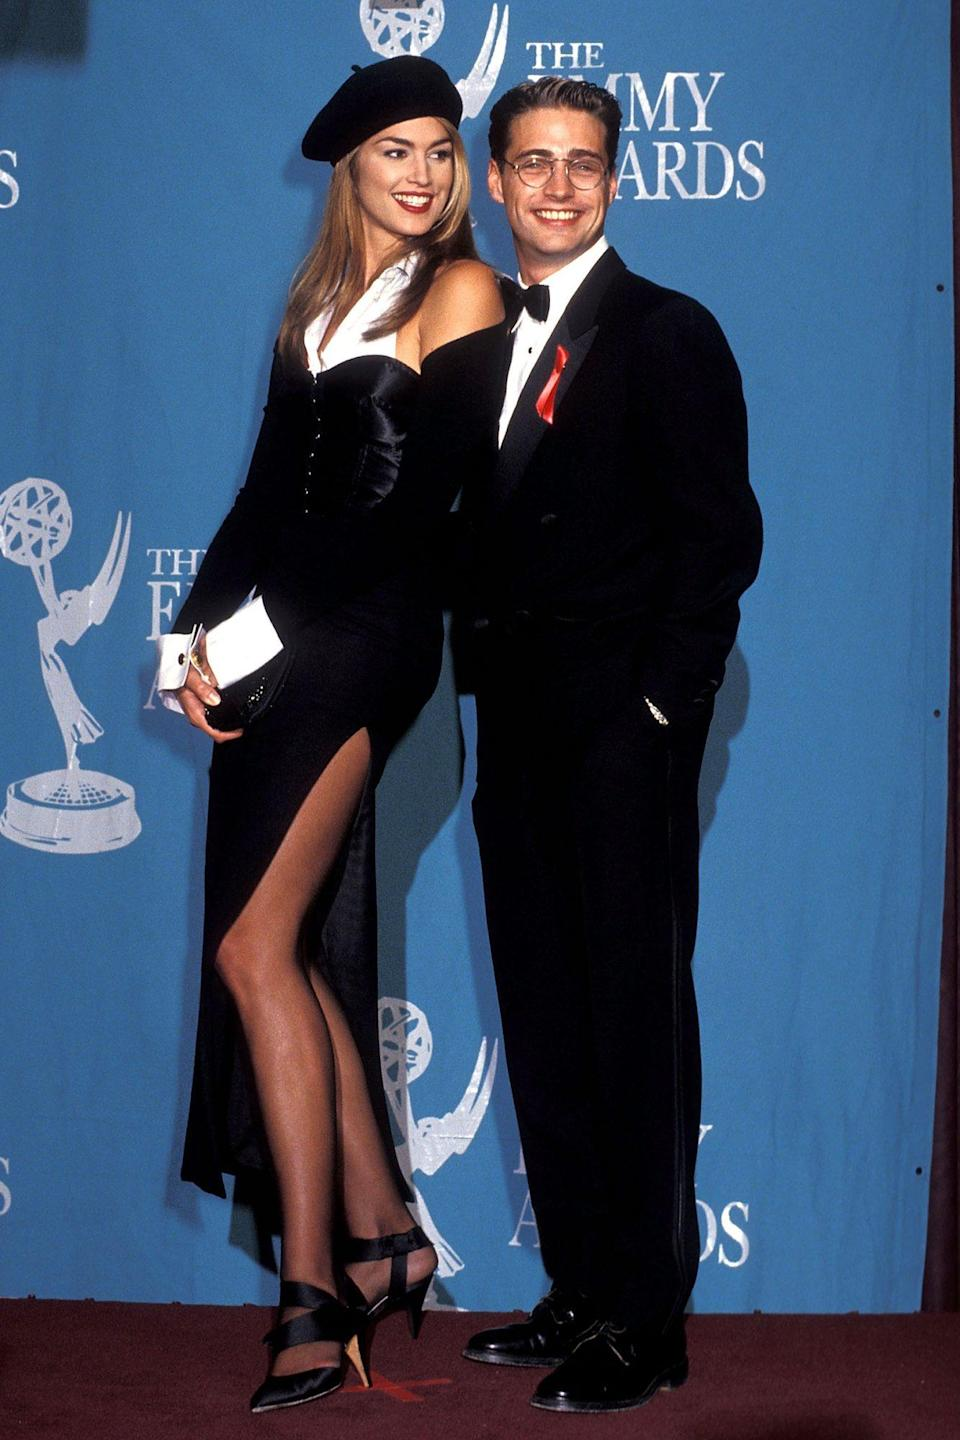 <p>Coordinating with Jason Priestley at the 44th Annual Primetime Emmy Awards in Pasadena, California, in 1992.</p>